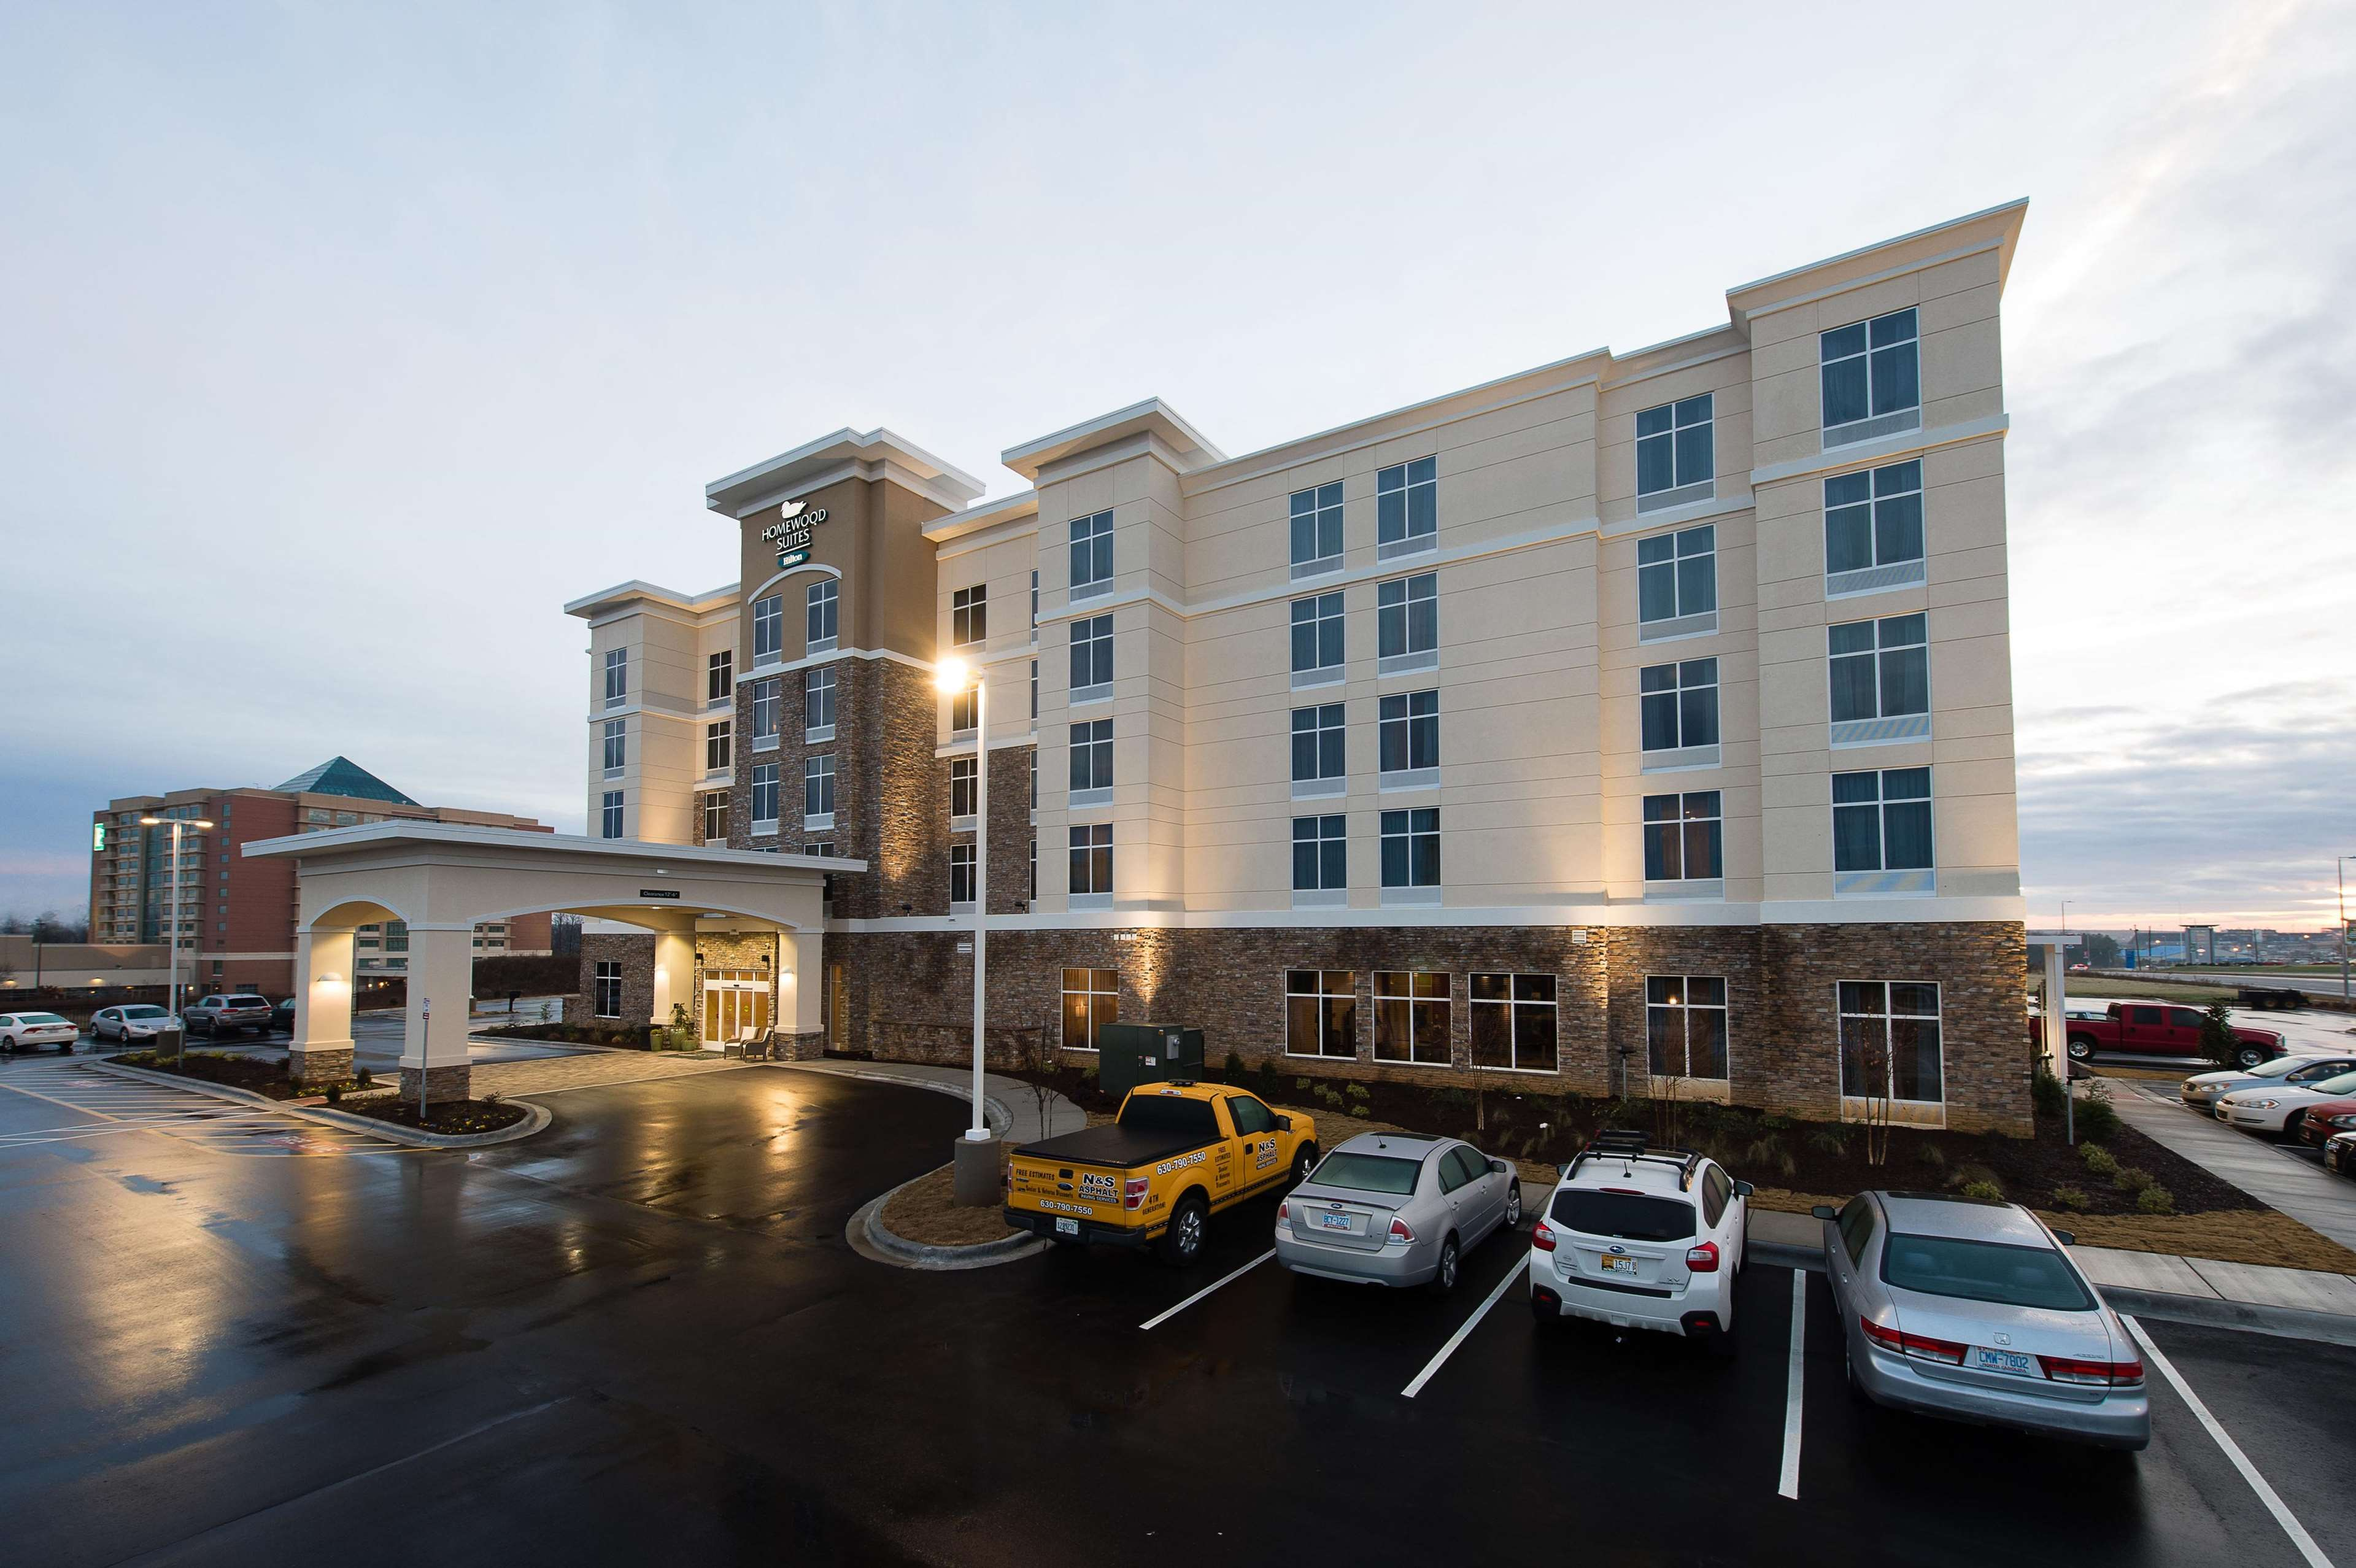 Homewood suites by hilton concord charlotte in concord nc for Motels close to charlotte motor speedway